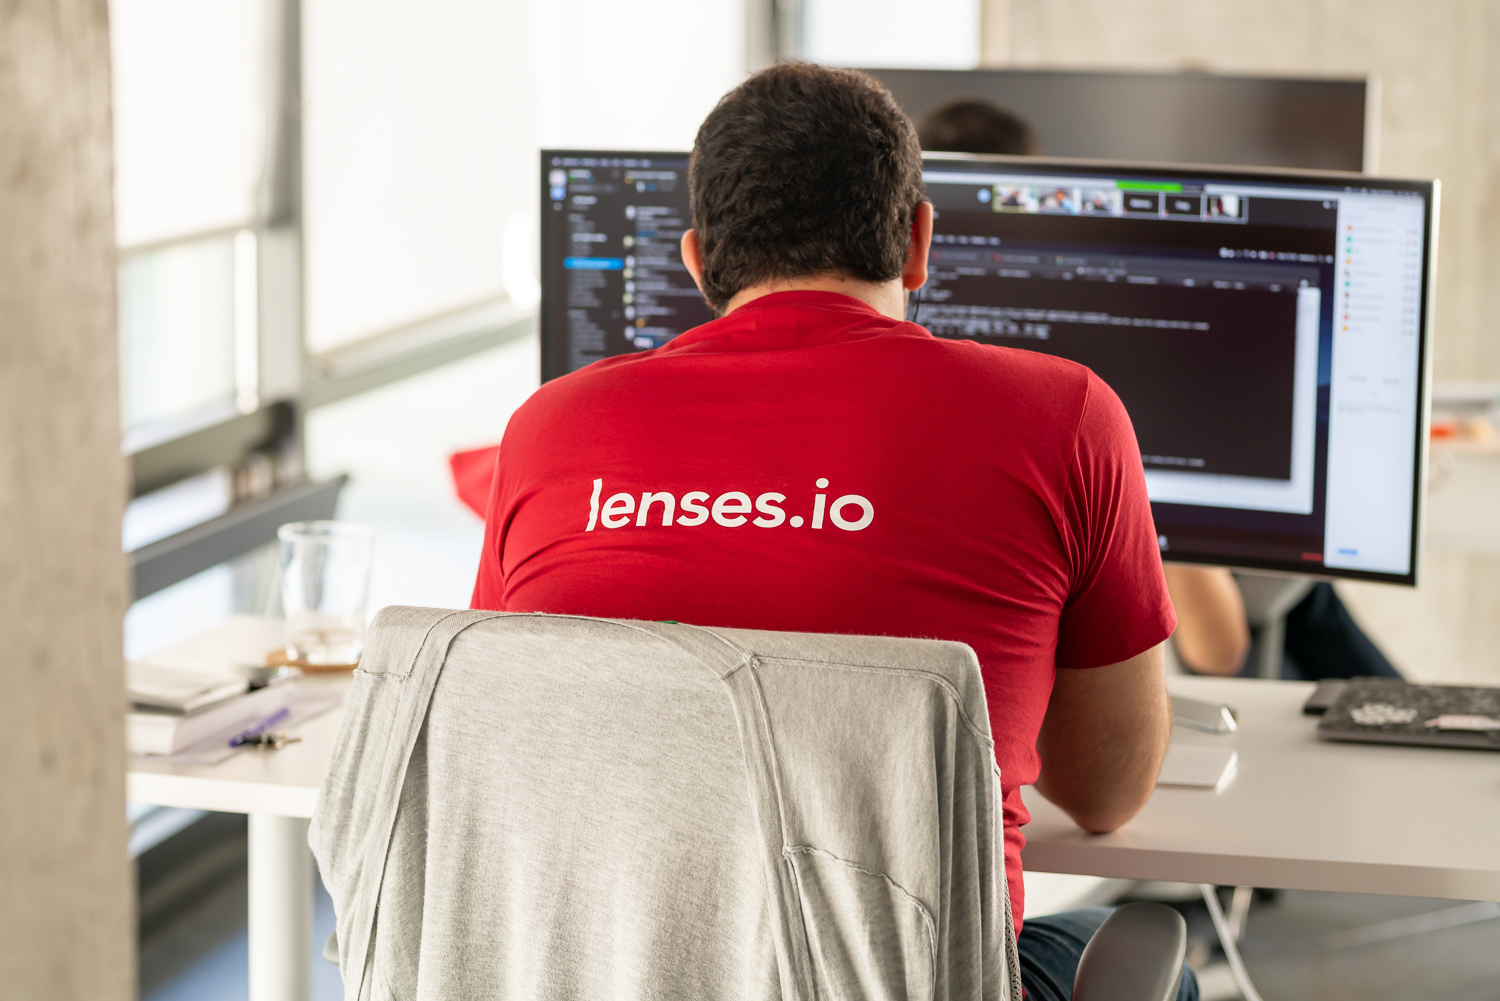 lenses.io developer working in office